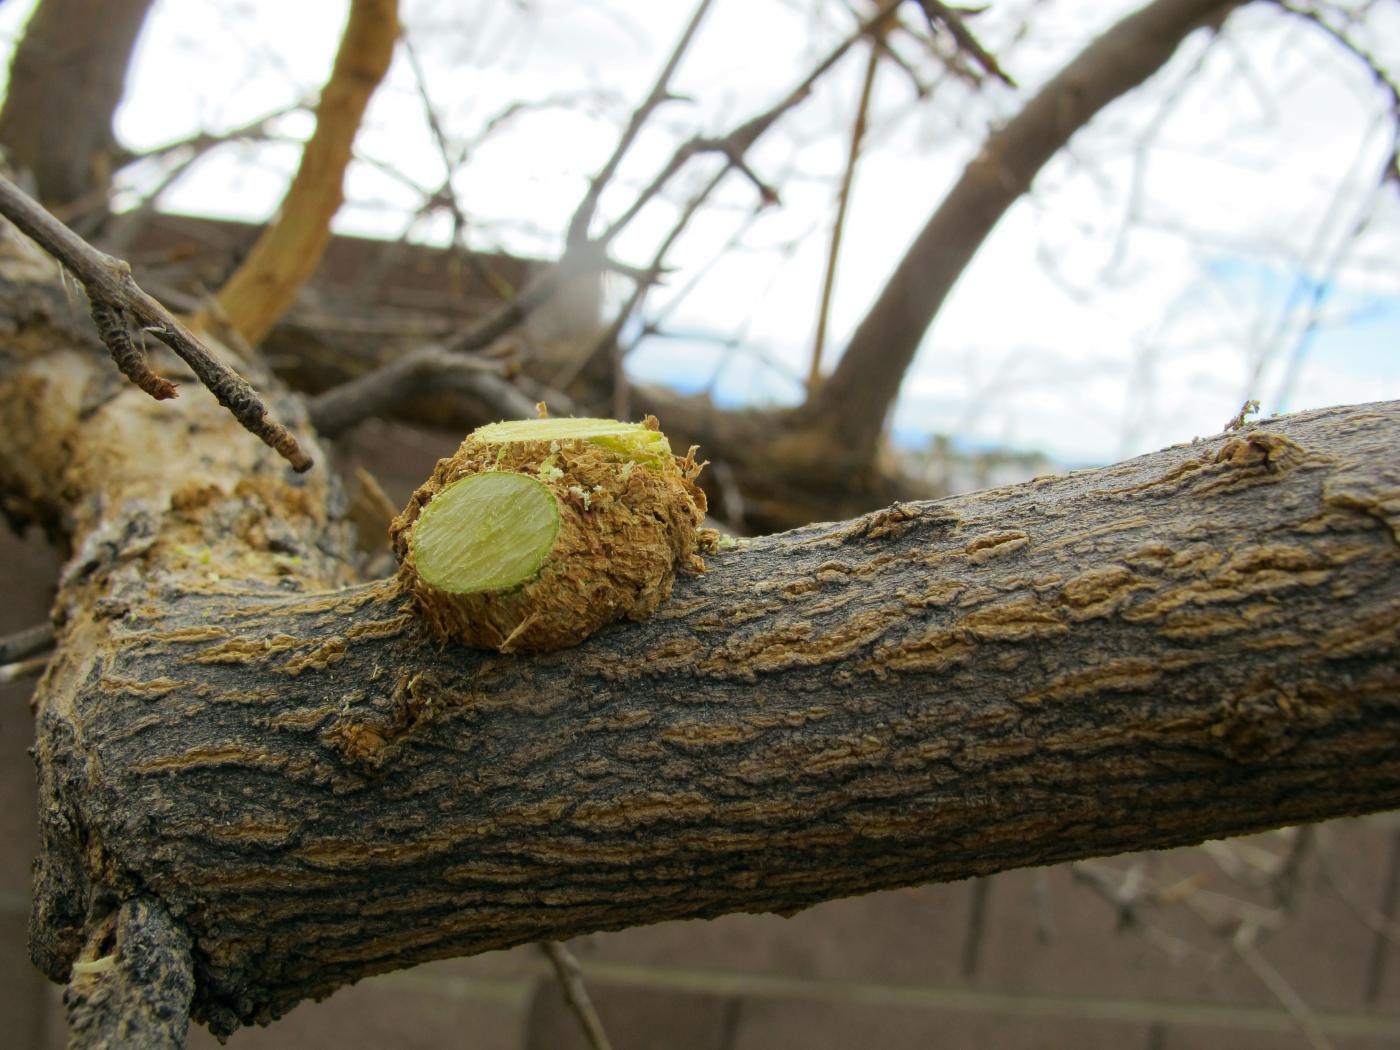 Norm Schilling tackles some easy pruning